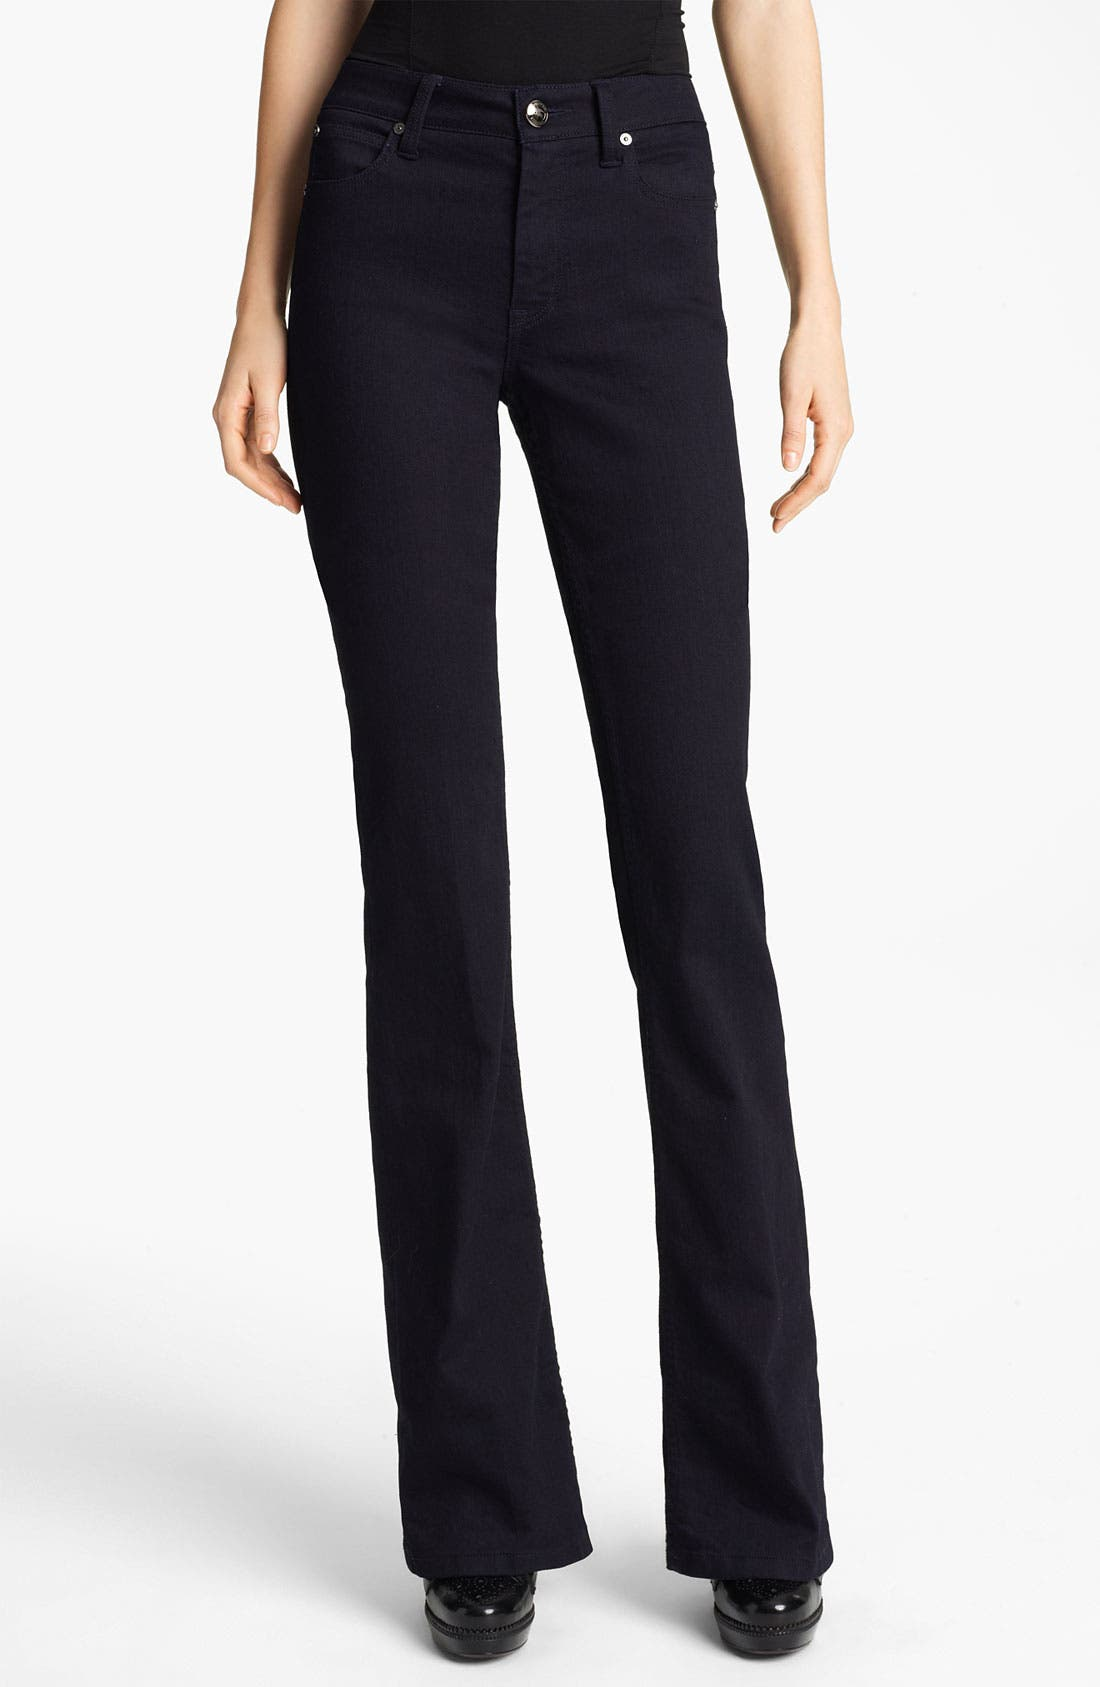 Alternate Image 1 Selected - Burberry London Flare Leg Stretch Jeans